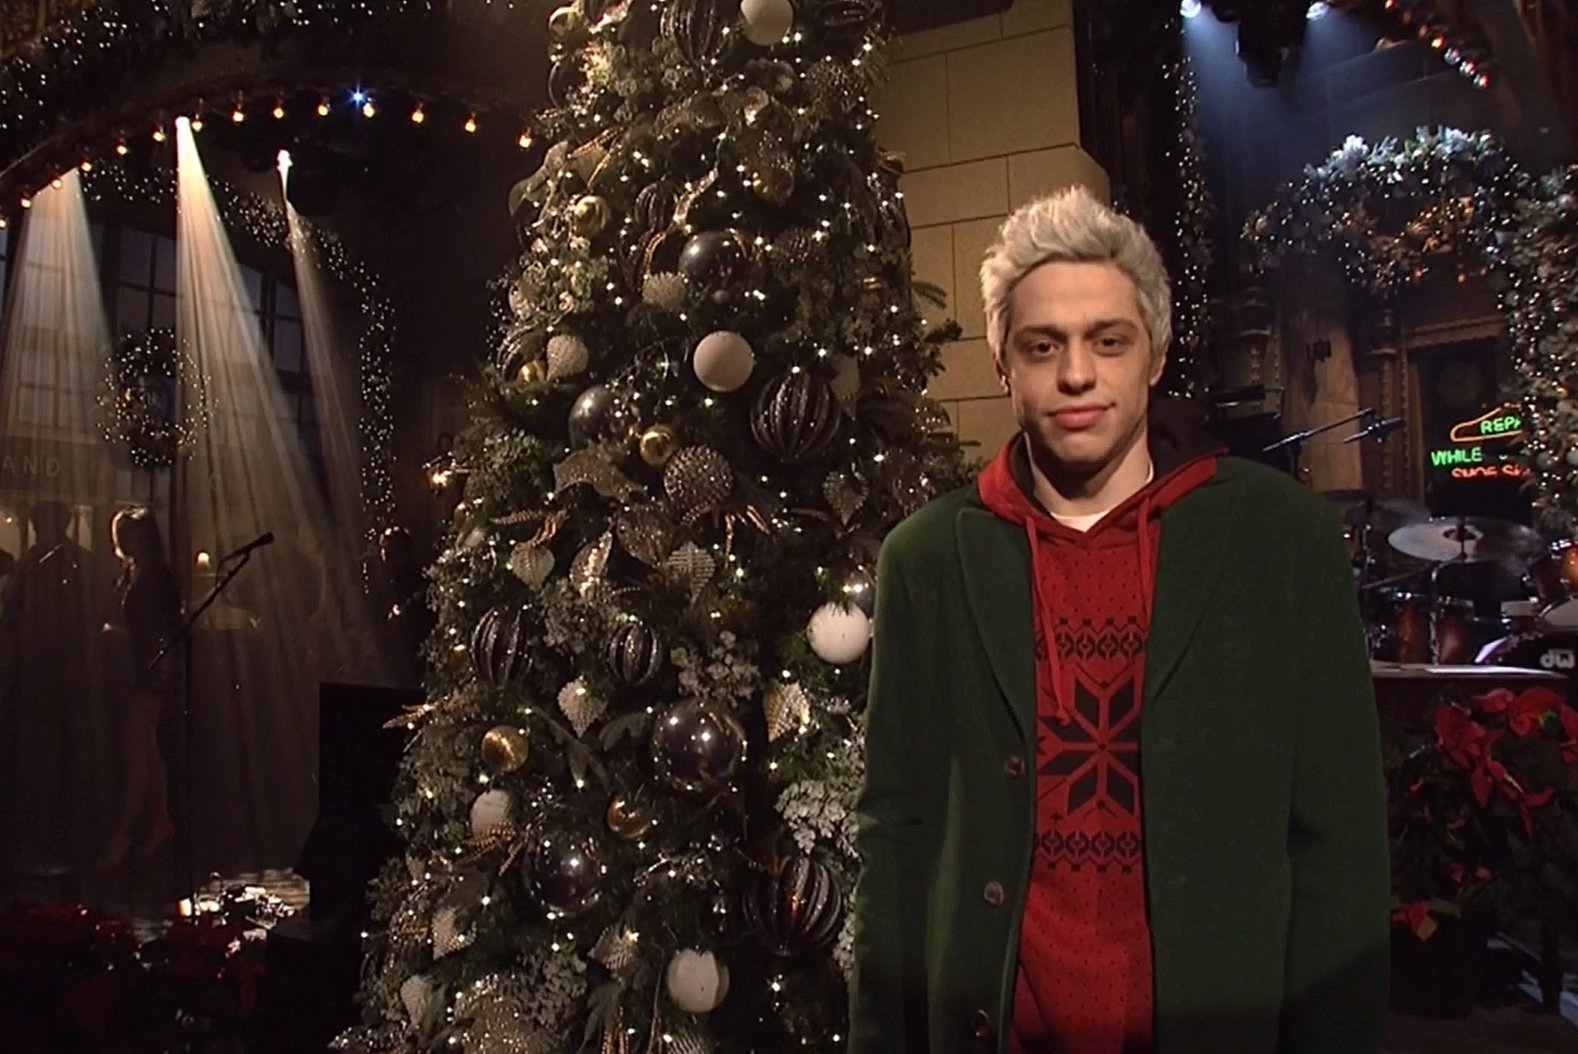 Pete Davidson was absent from SNL 'because he missed rehearsals' amid troubling Instagram post